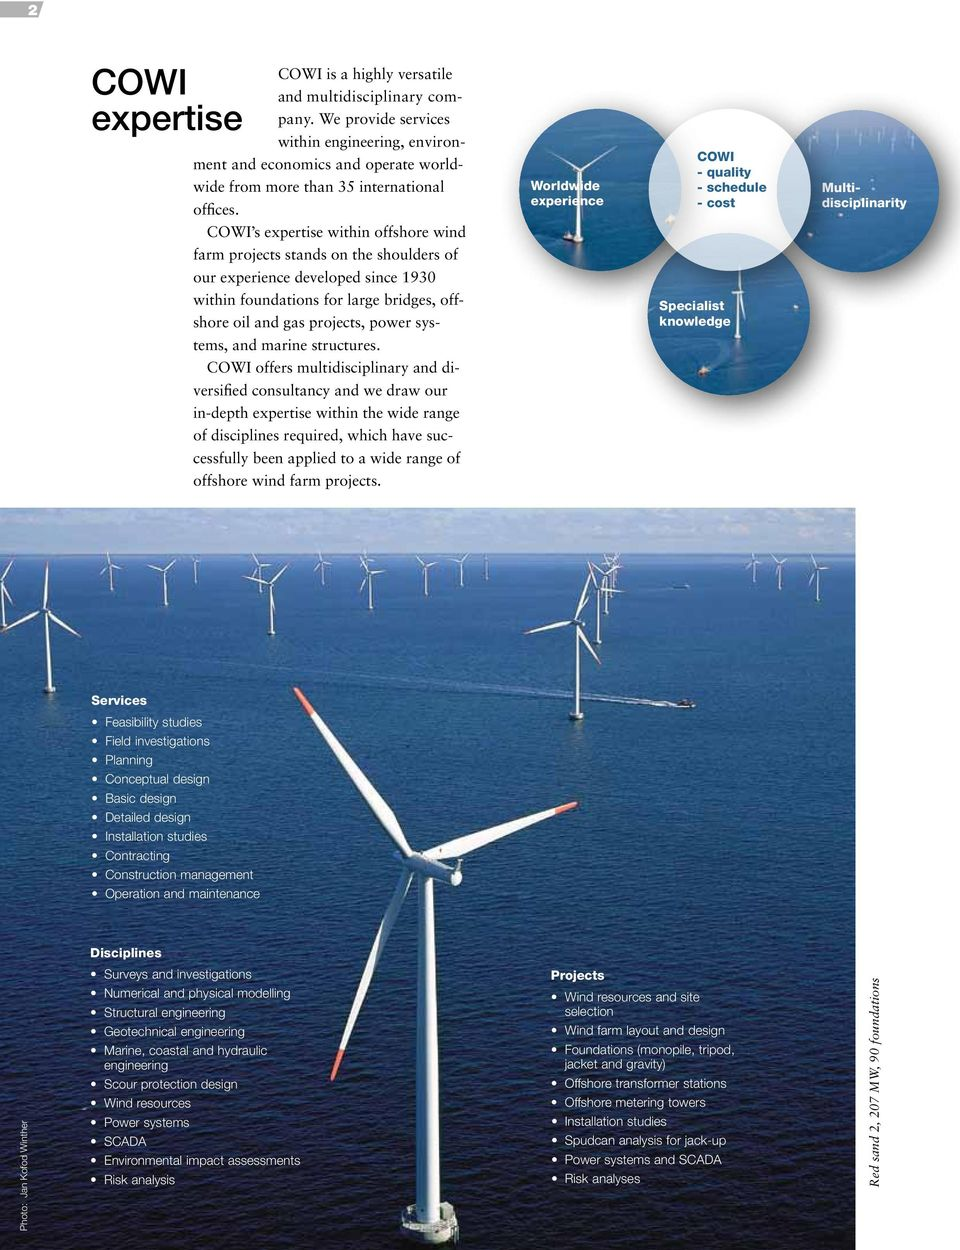 Worldwide experience COWI - quality - schedule - cost Multidisciplinarity COWI s expertise within offshore wind farm projects stands on the shoulders of our experience developed since 1930 within